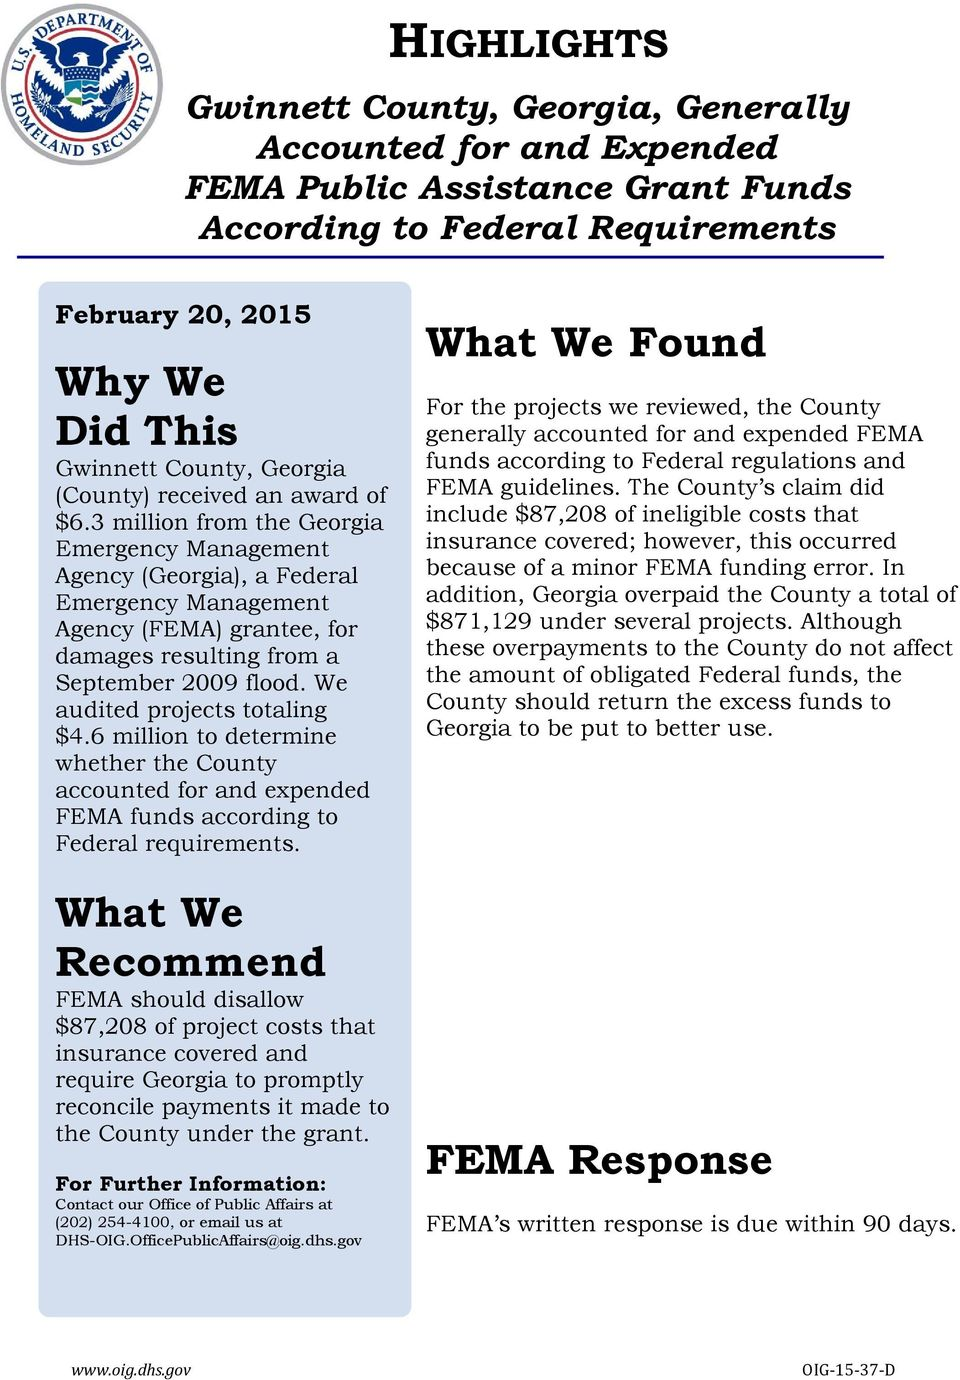 3 million from the Georgia Emergency Management Agency (Georgia), a Federal Emergency Management Agency (FEMA) grantee, for damages resulting from a September 2009 flood.